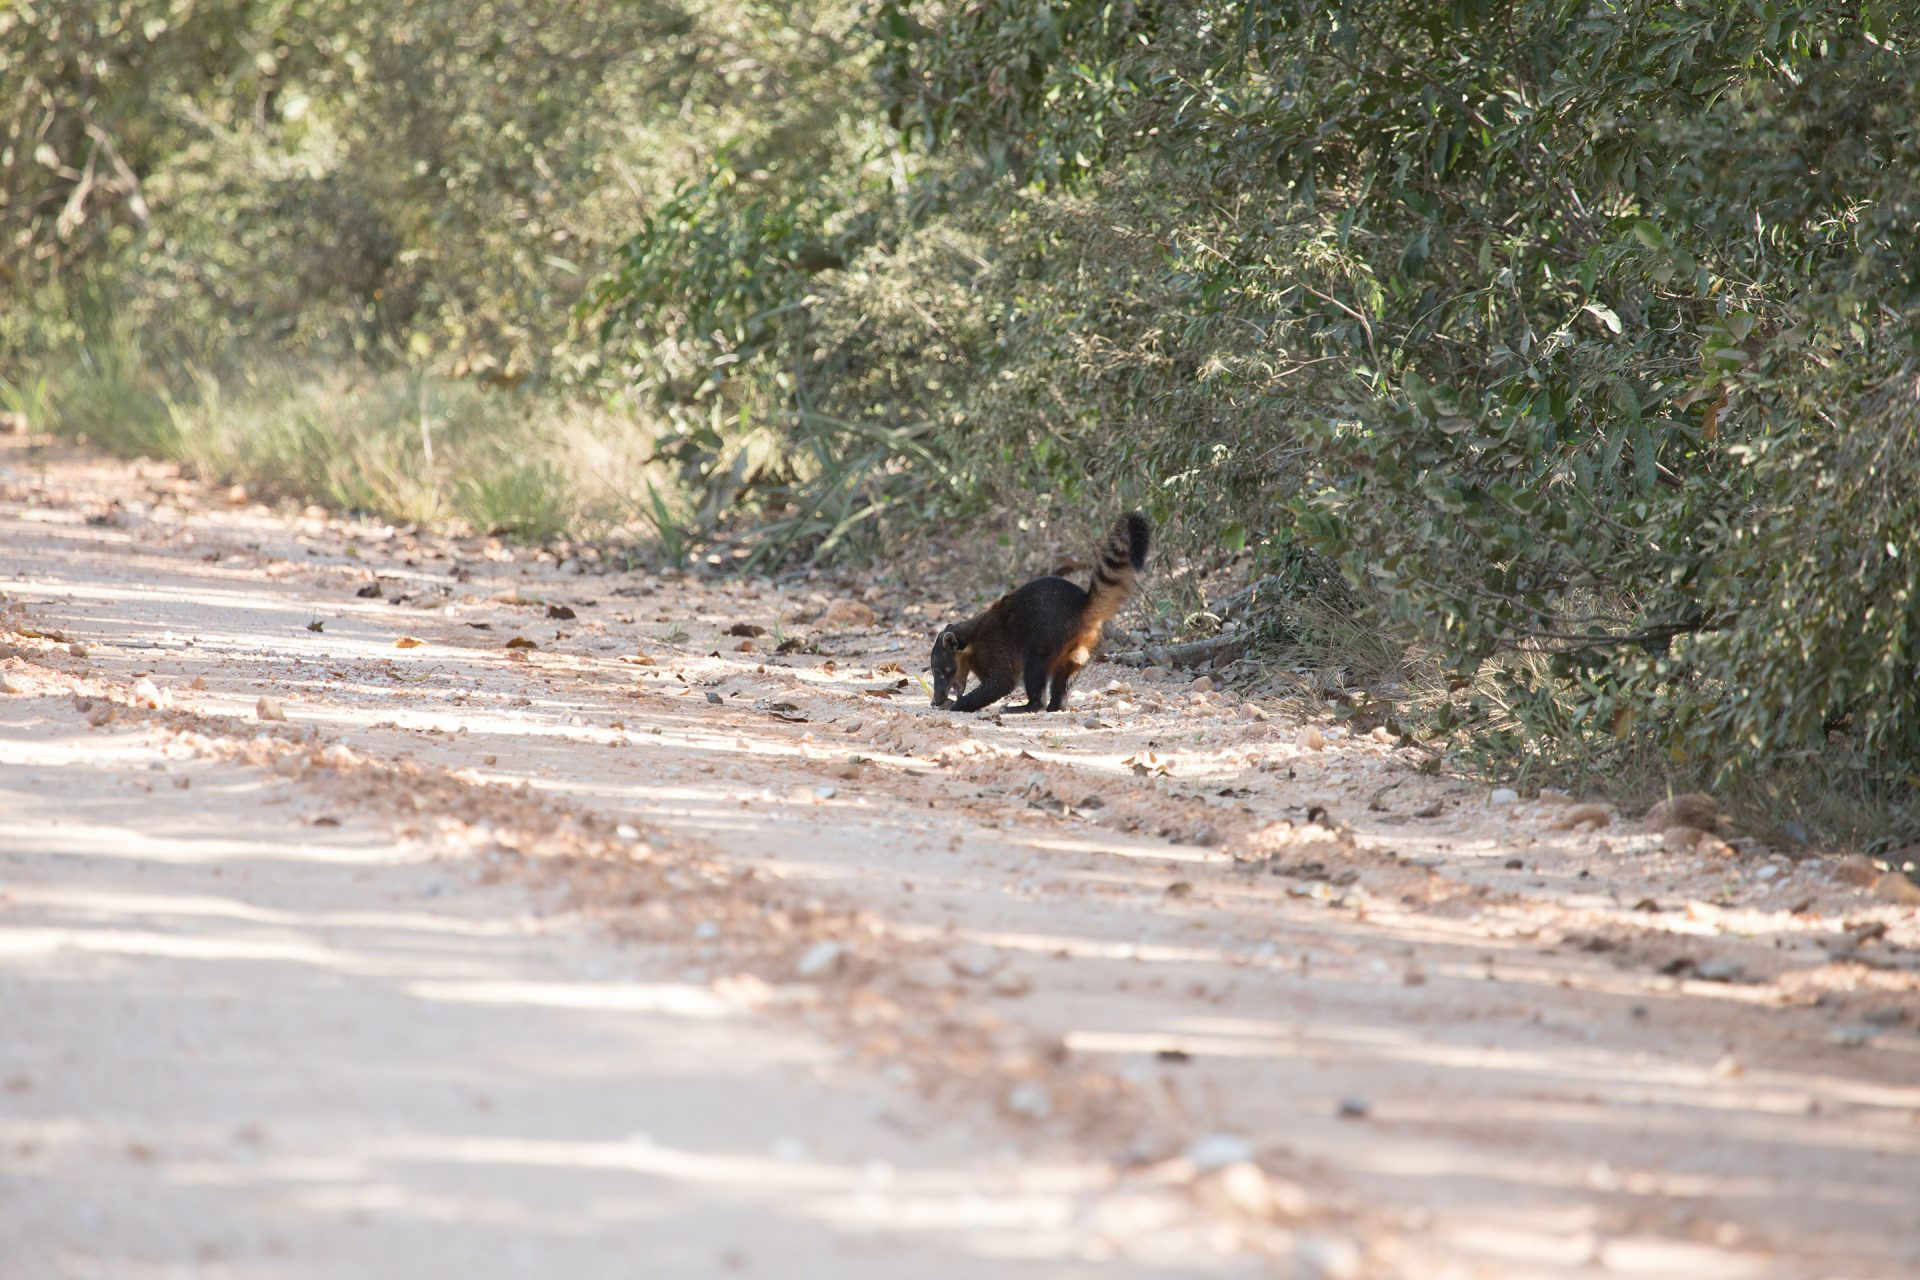 We saw many mammals crossing the road like this coati.